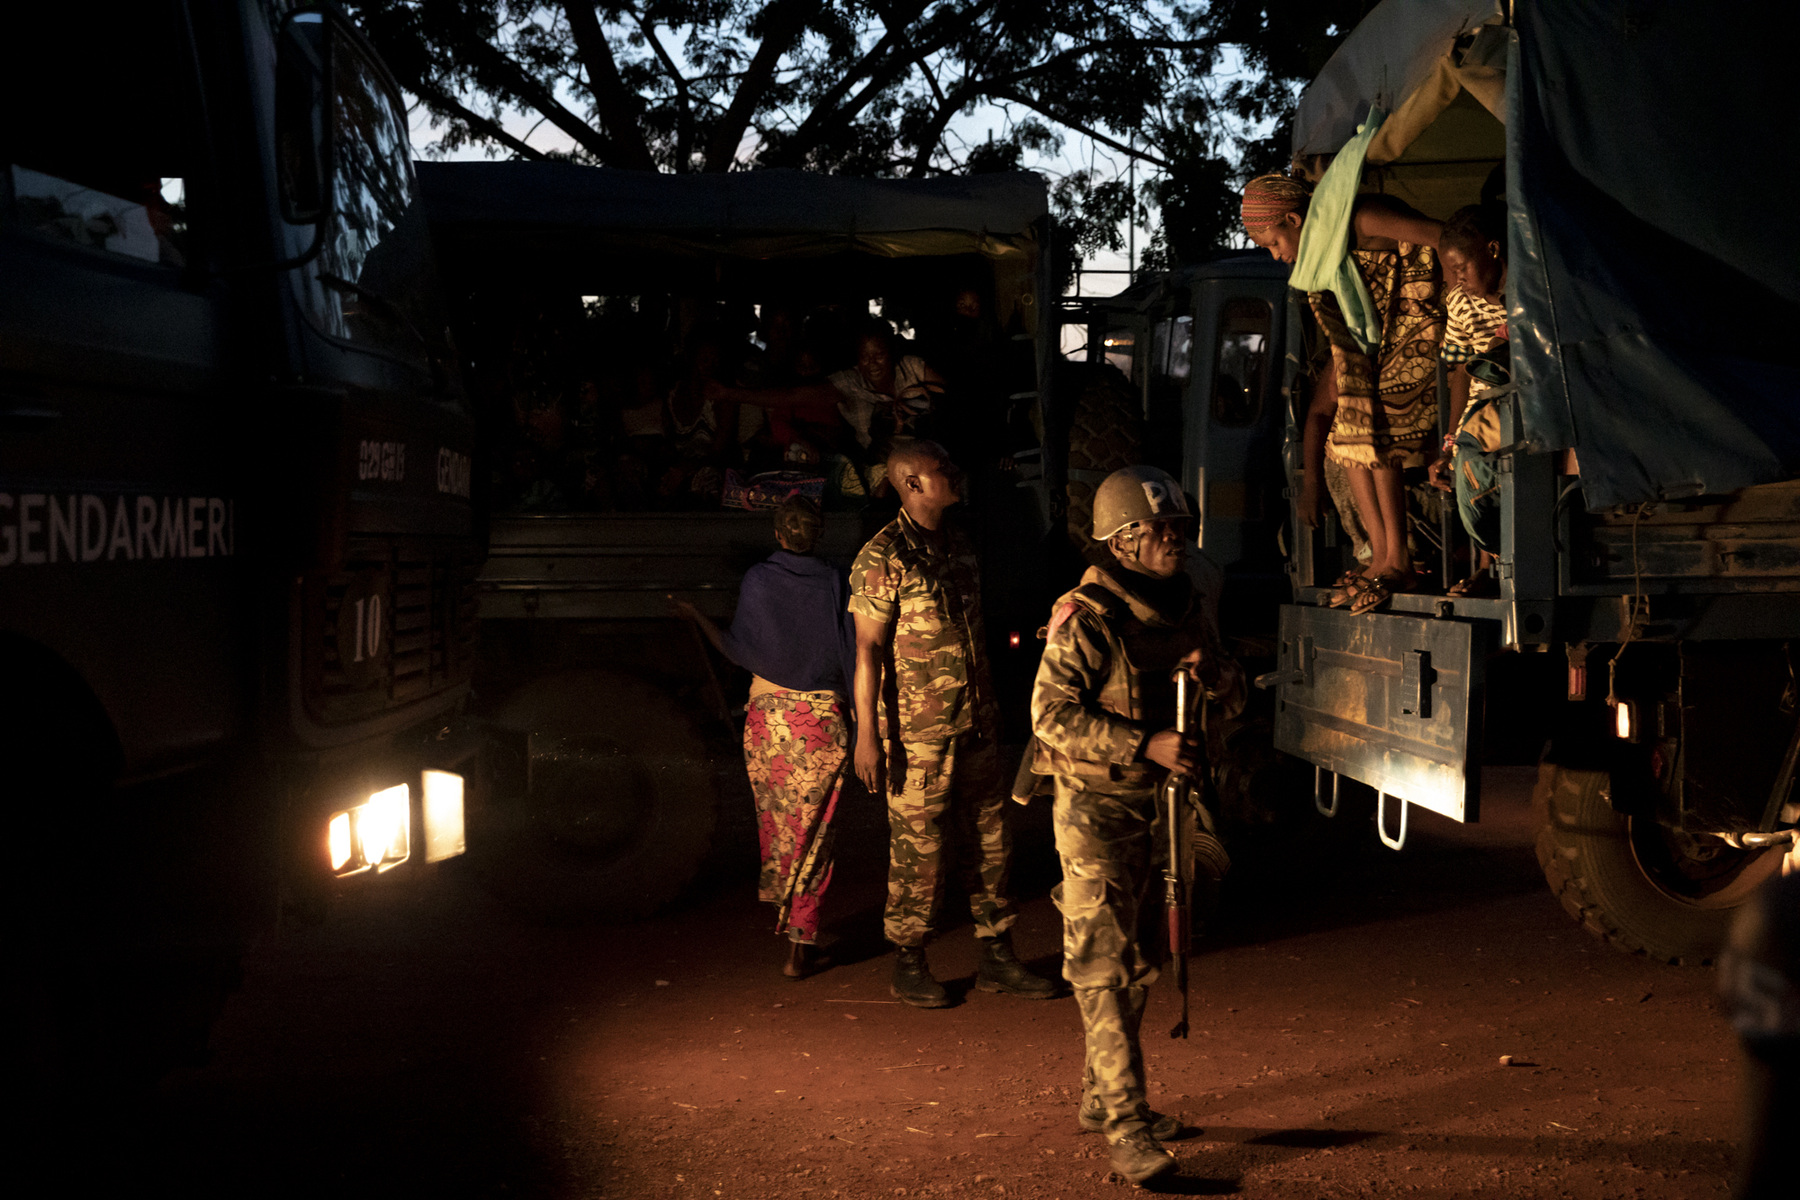 Adrienne Surprenant - A truck carrying women and children dislodged by the floods arrived at the Omnisport stadium. 1300 people were relocated there in the wait of a more durable shelter. October 29th, 2019. Bangui, the Central African Republic.